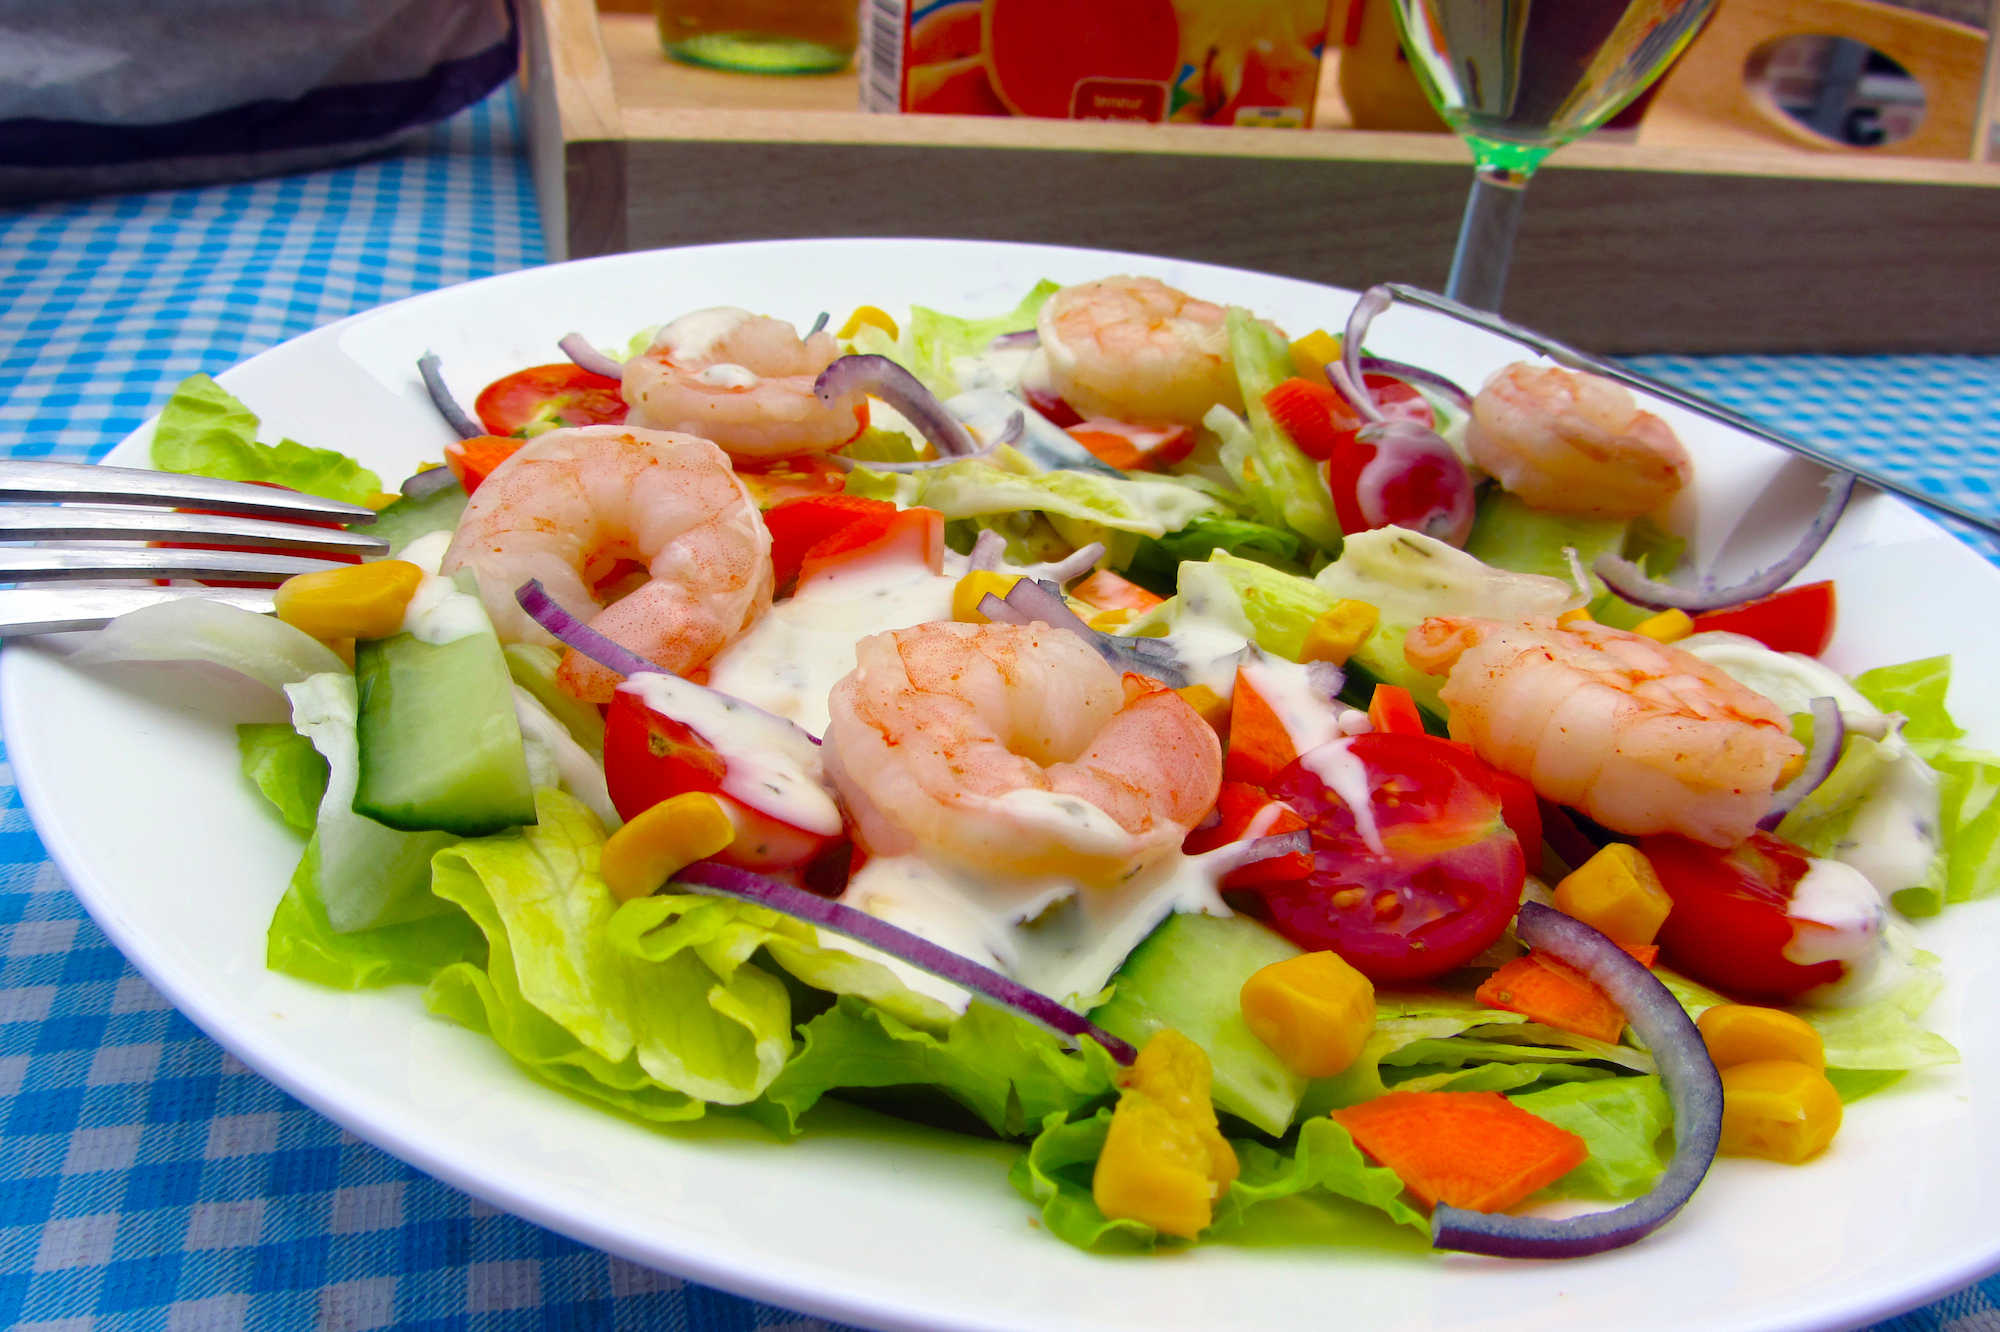 Zomerse salade met scampi